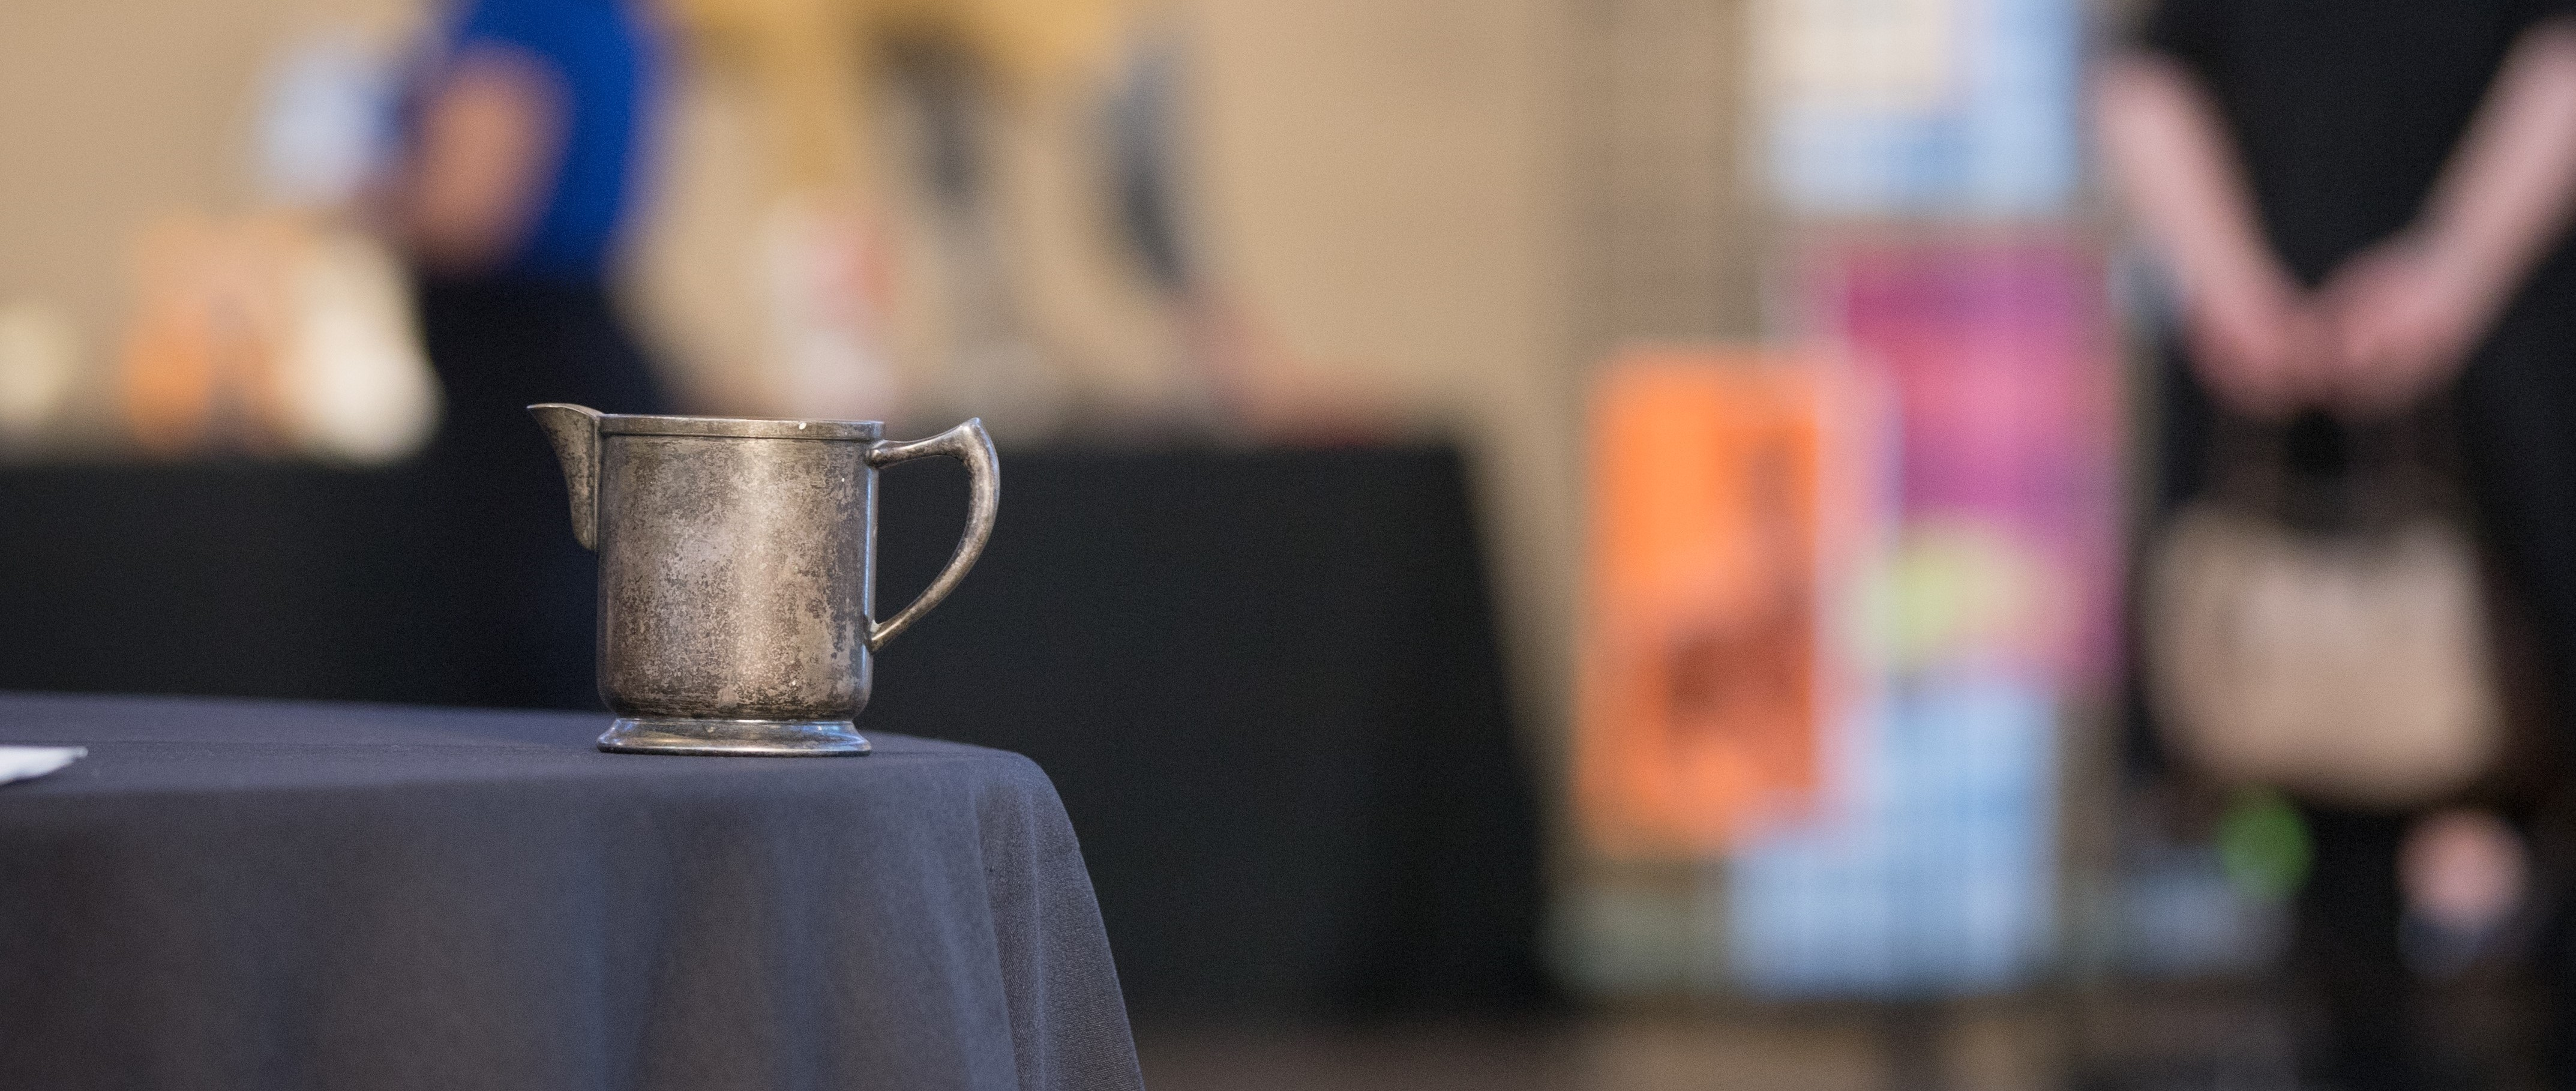 Join us for our Fourth Annual Silver Cup Celebration